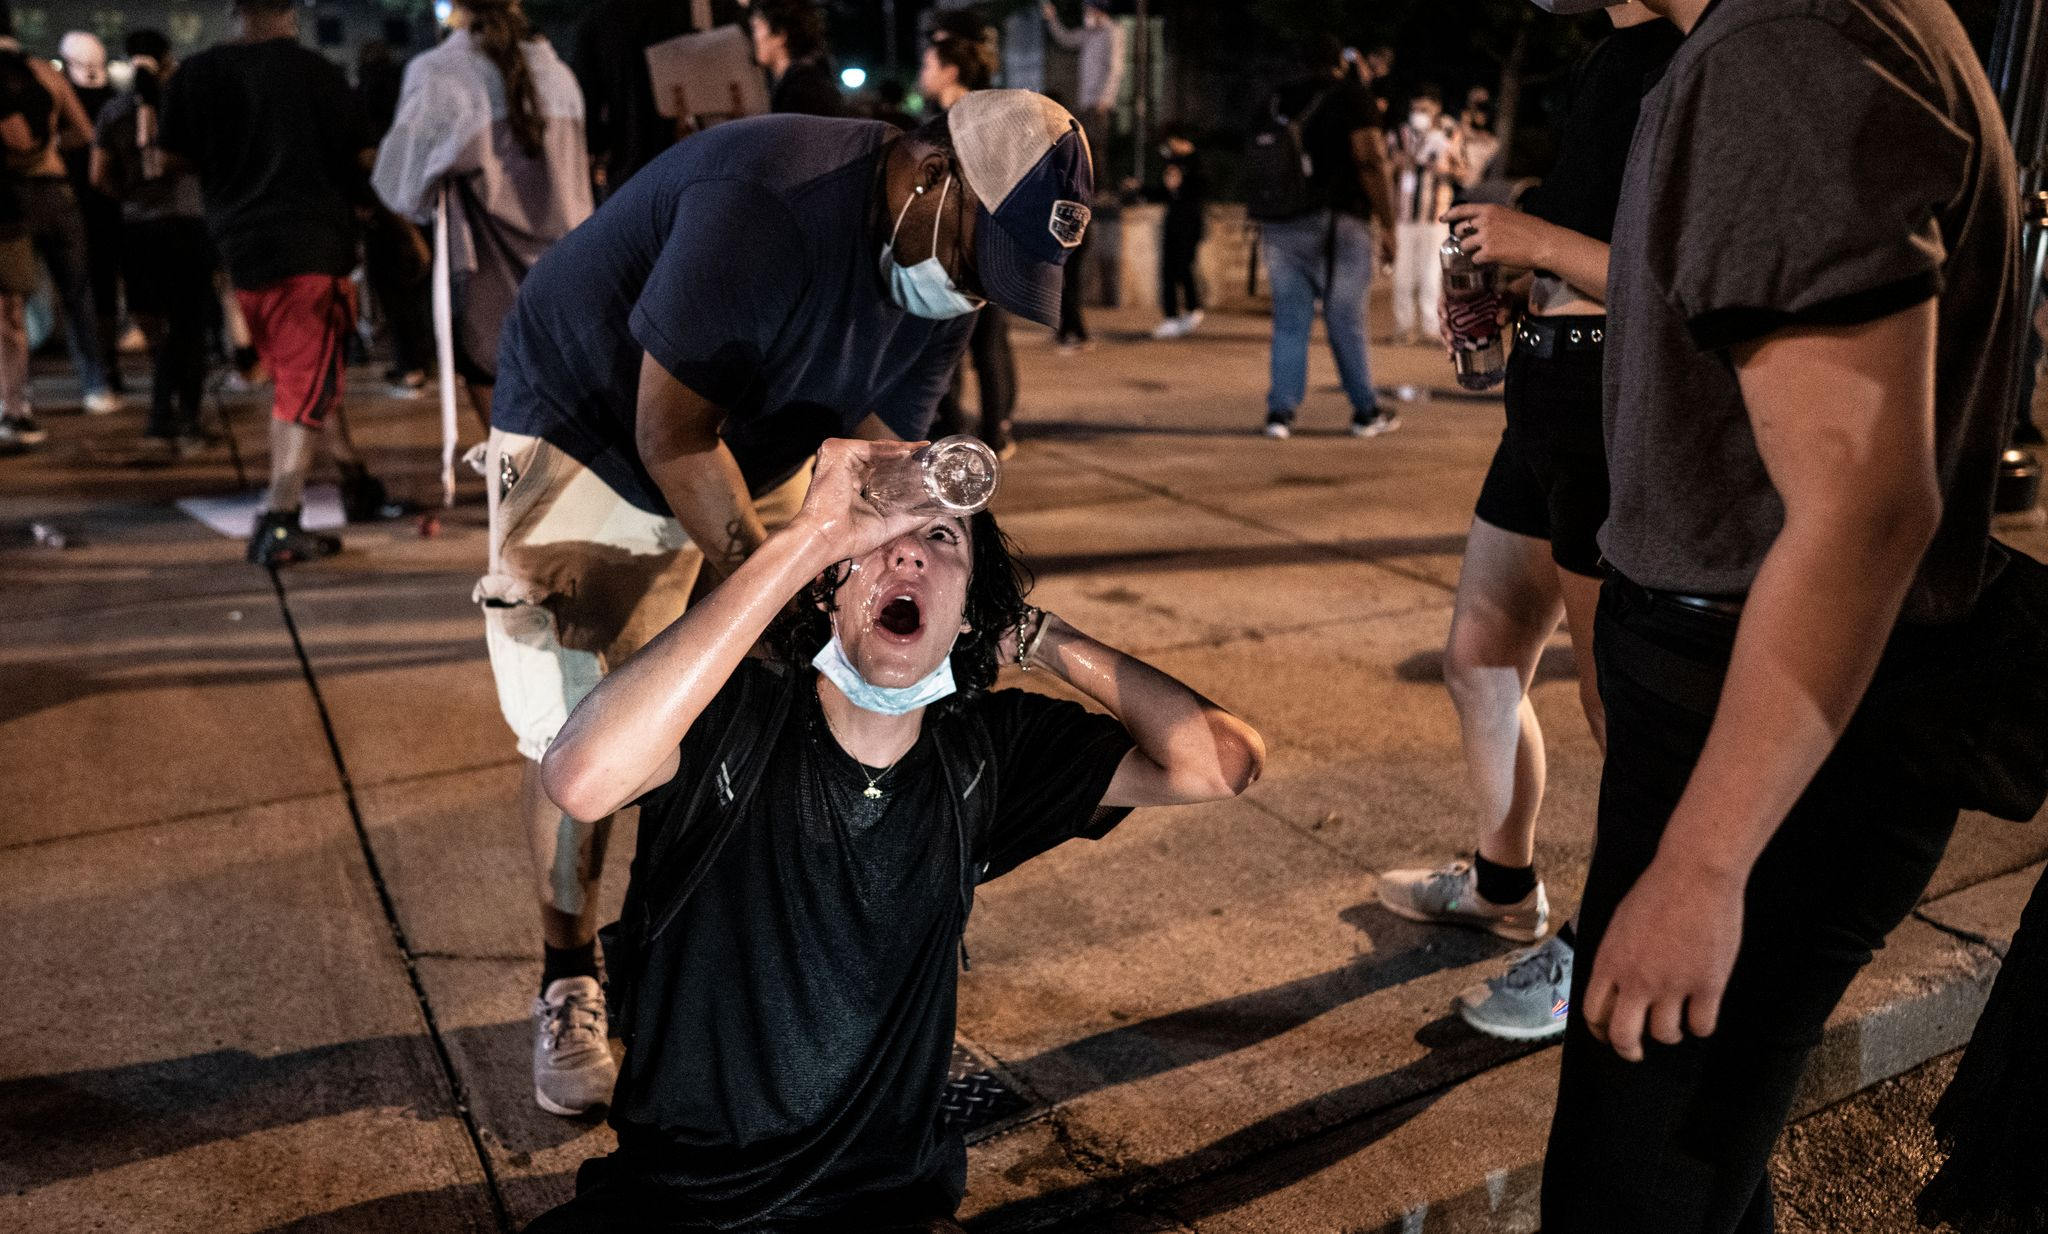 Nashville, Tenn., May 30 - A man rinses his eyes after tear gas was released by Metro Nashville Police.